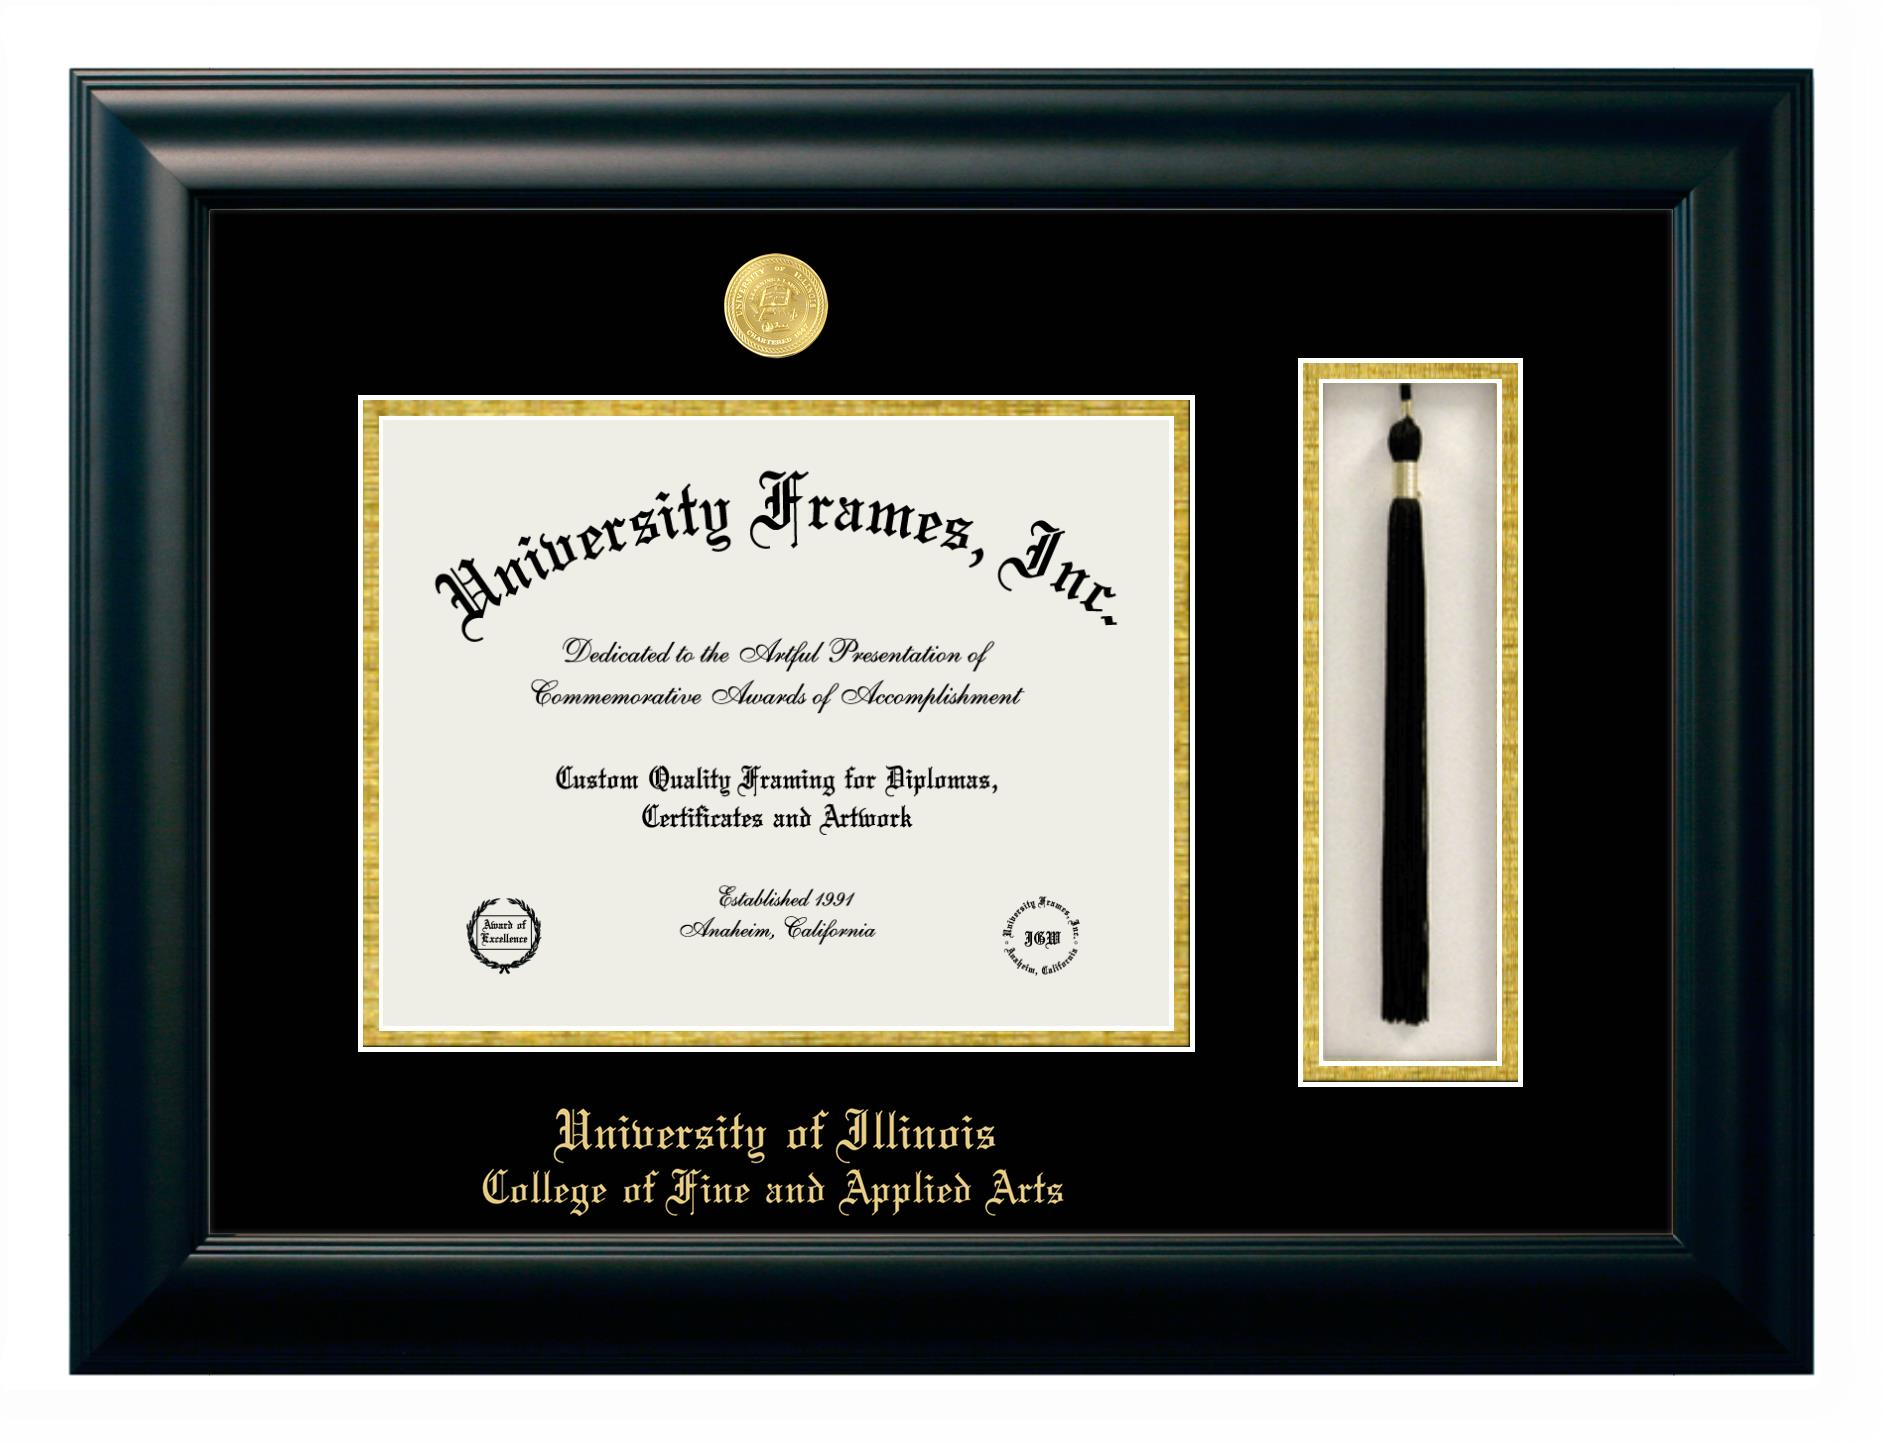 University Of Illinois College Of Fine And Applied Arts Diploma Frame In Legacy Black Cherry With Black Gold Mats